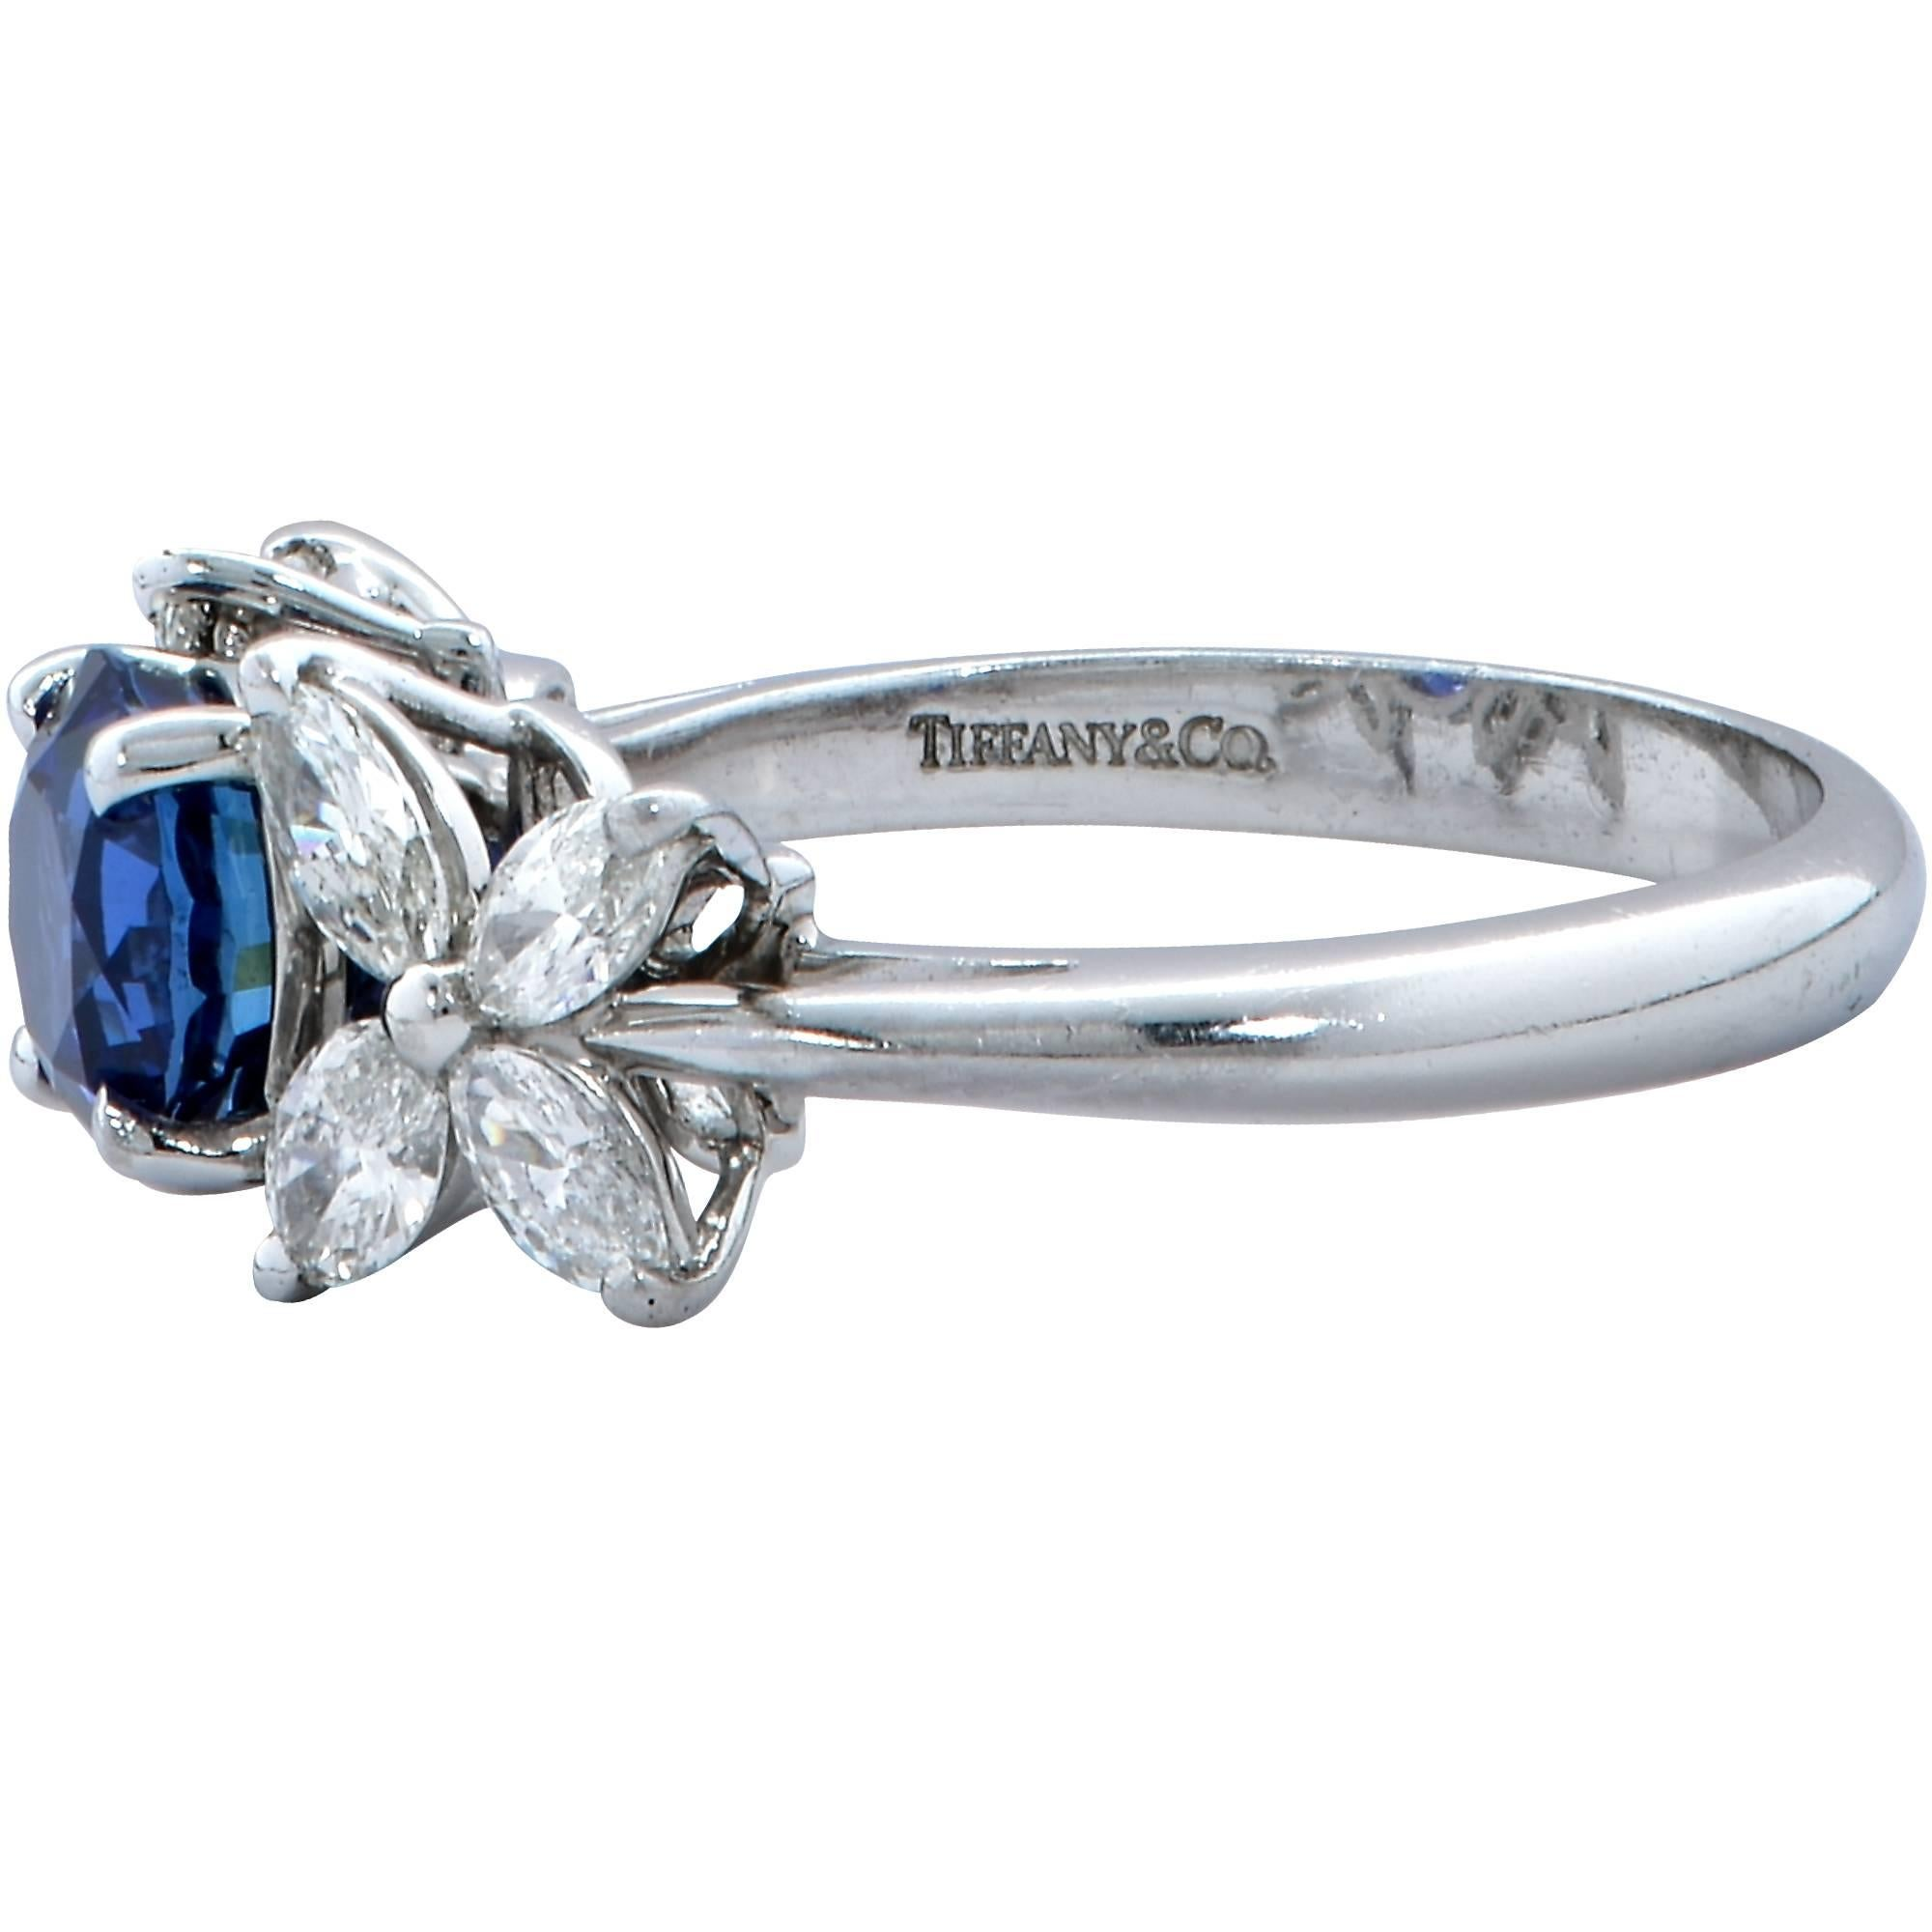 co tiffany ring solitaire jewelry rings single carat j id at diamond master stone platinum and